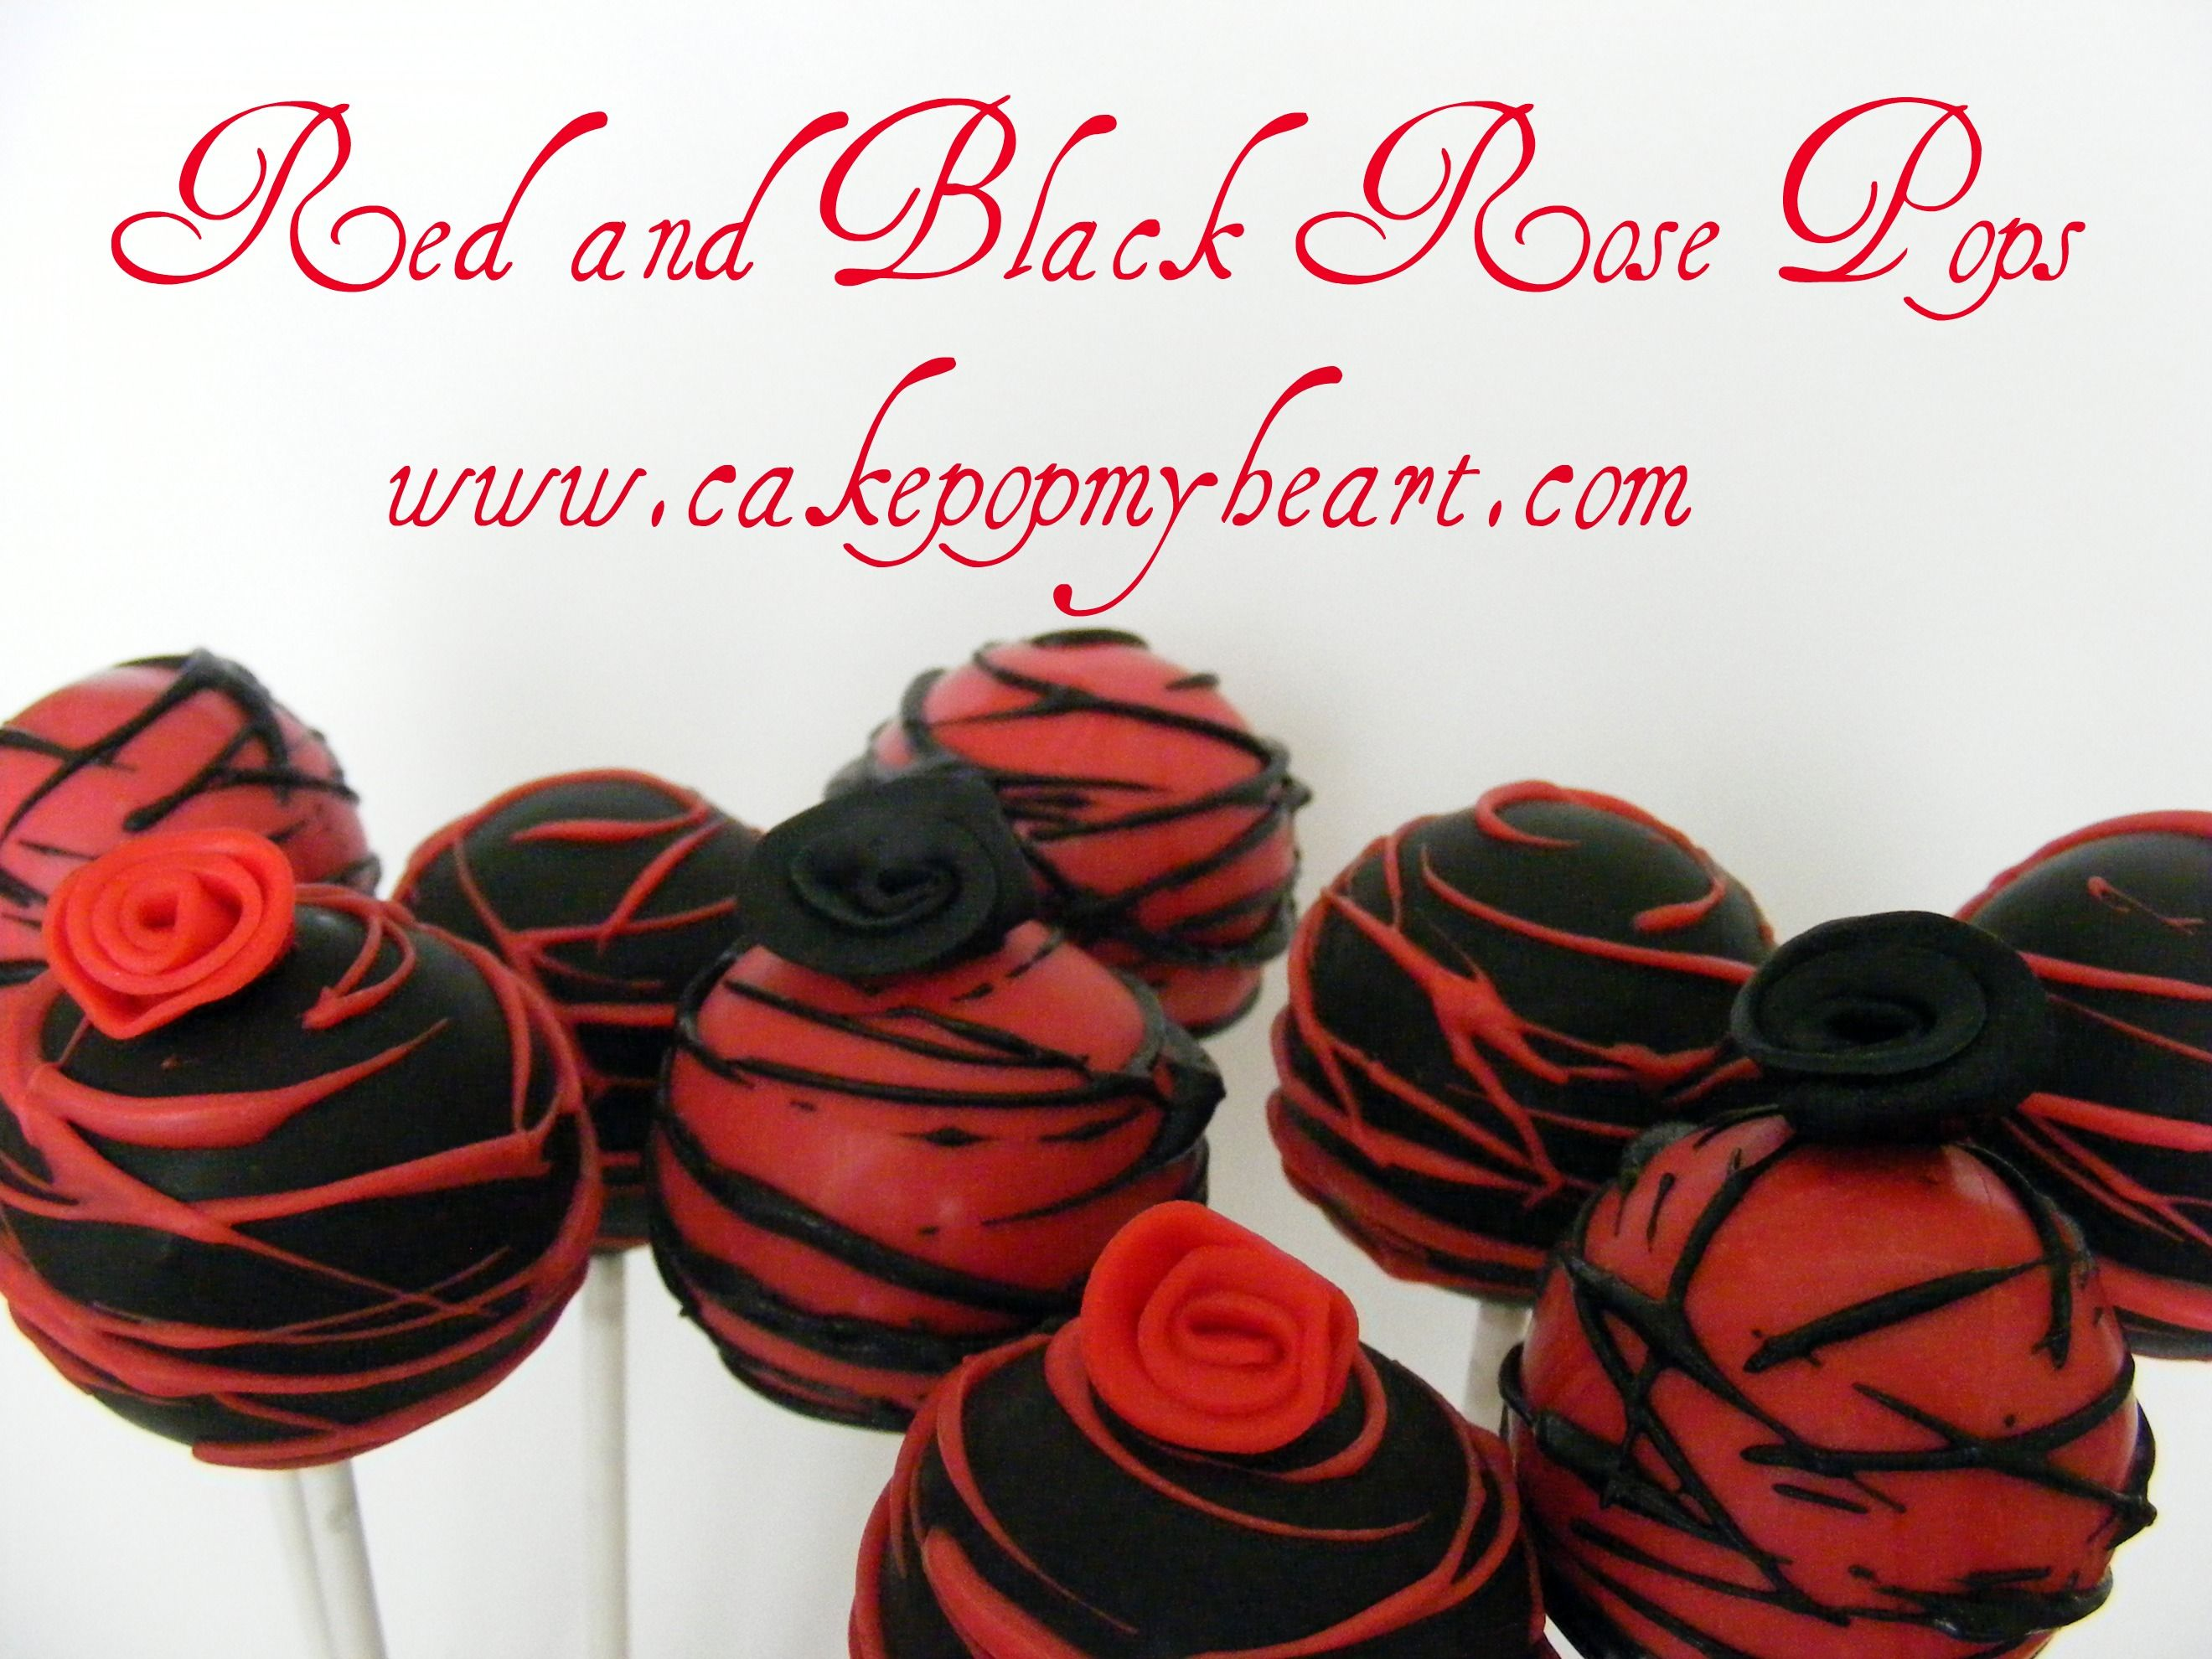 Red And Black Rose Cake Pops